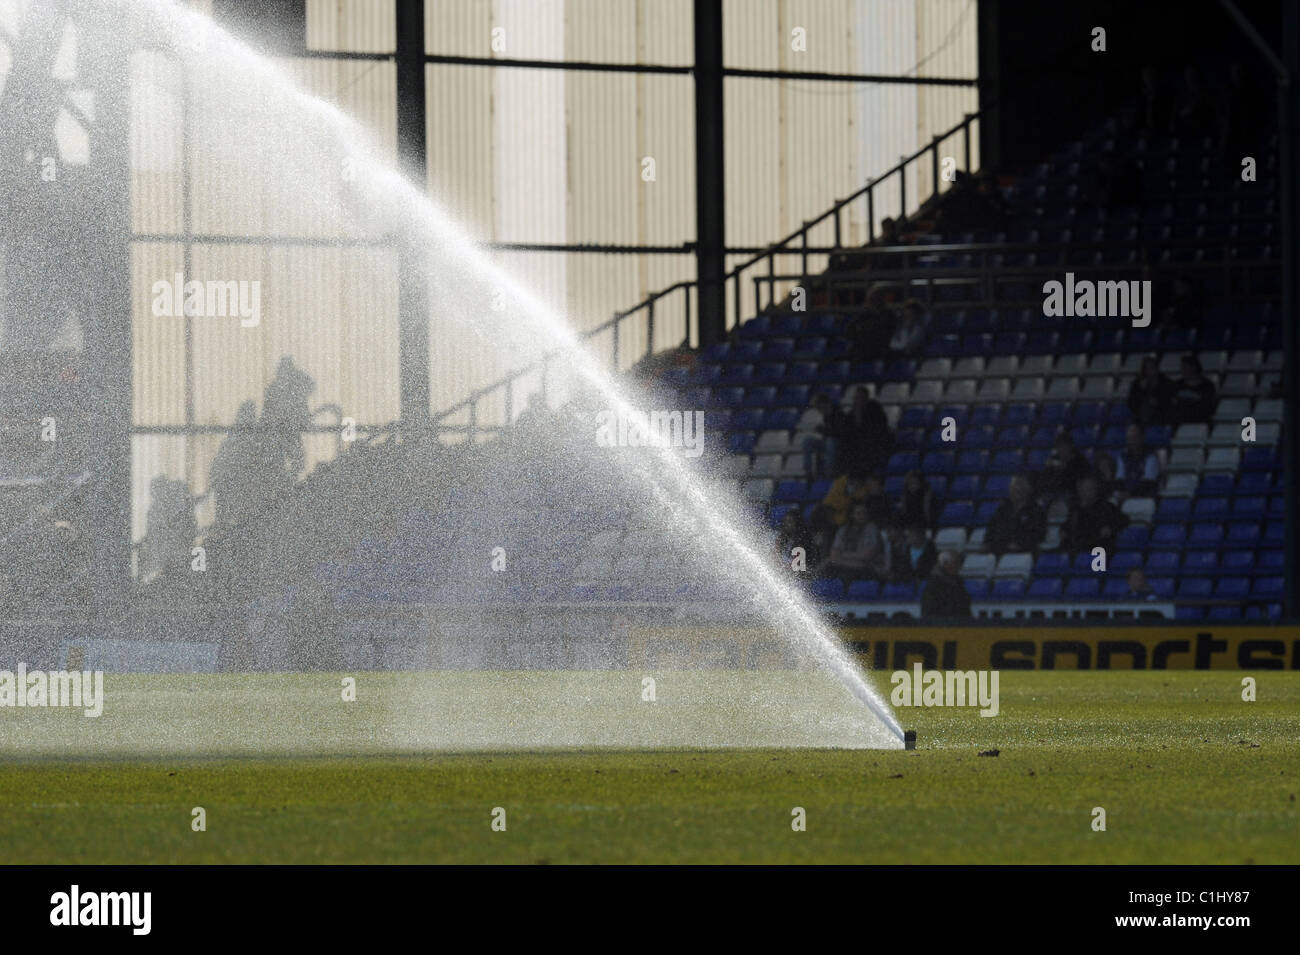 Water sprinkler on a football pitch UK - Stock Image